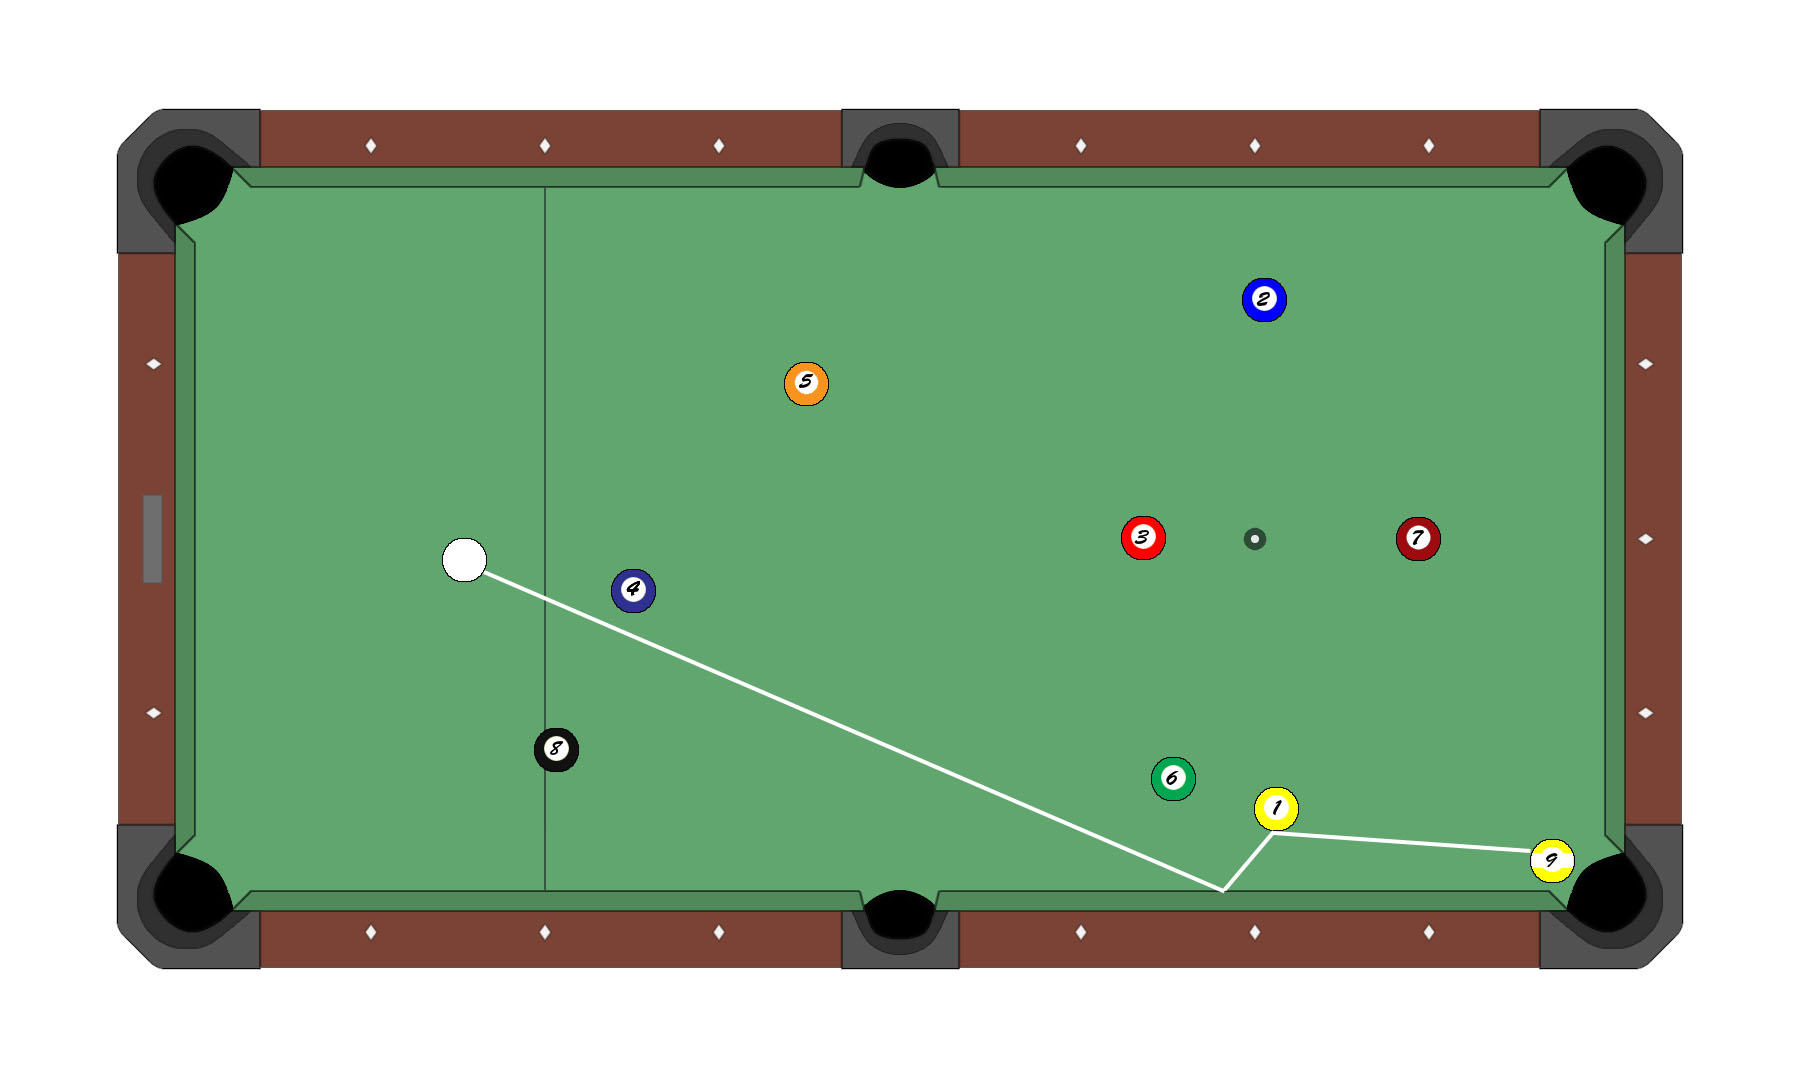 Diagram D Is One Of My Favorites. Here We Are Playing 9 Ball. It Seems Like  An Easy Run Out Up Until We Have To Deal With The Three Four Cluster.